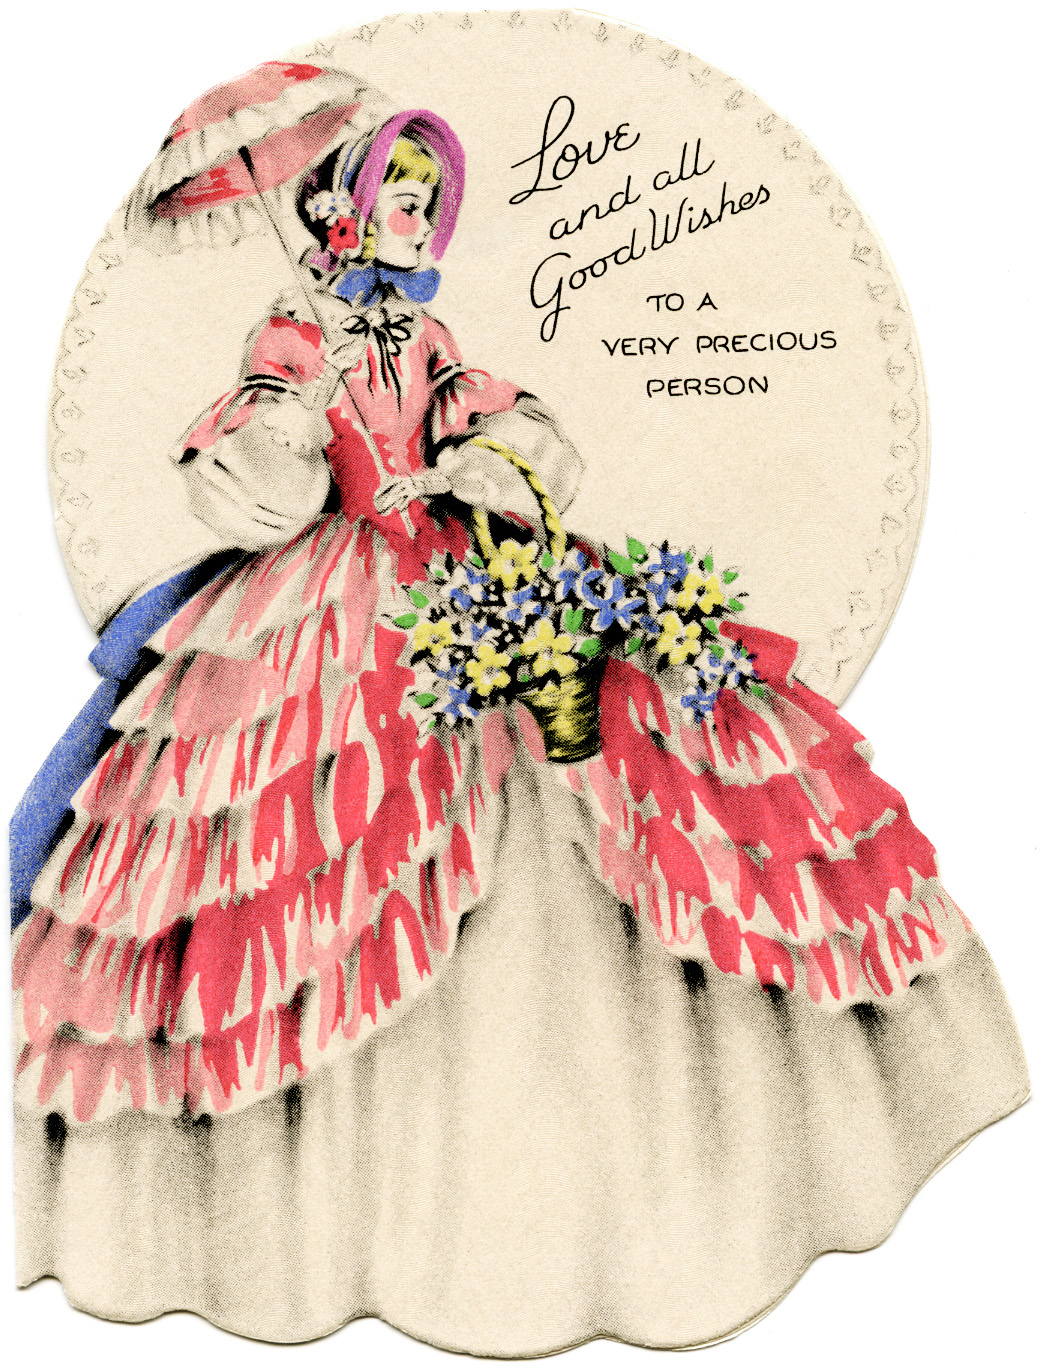 Vintage birthday cards for girls old design shop blog free vintage clip art victorian lady in ruffled pink dress and parasol birthday greeting card bookmarktalkfo Image collections